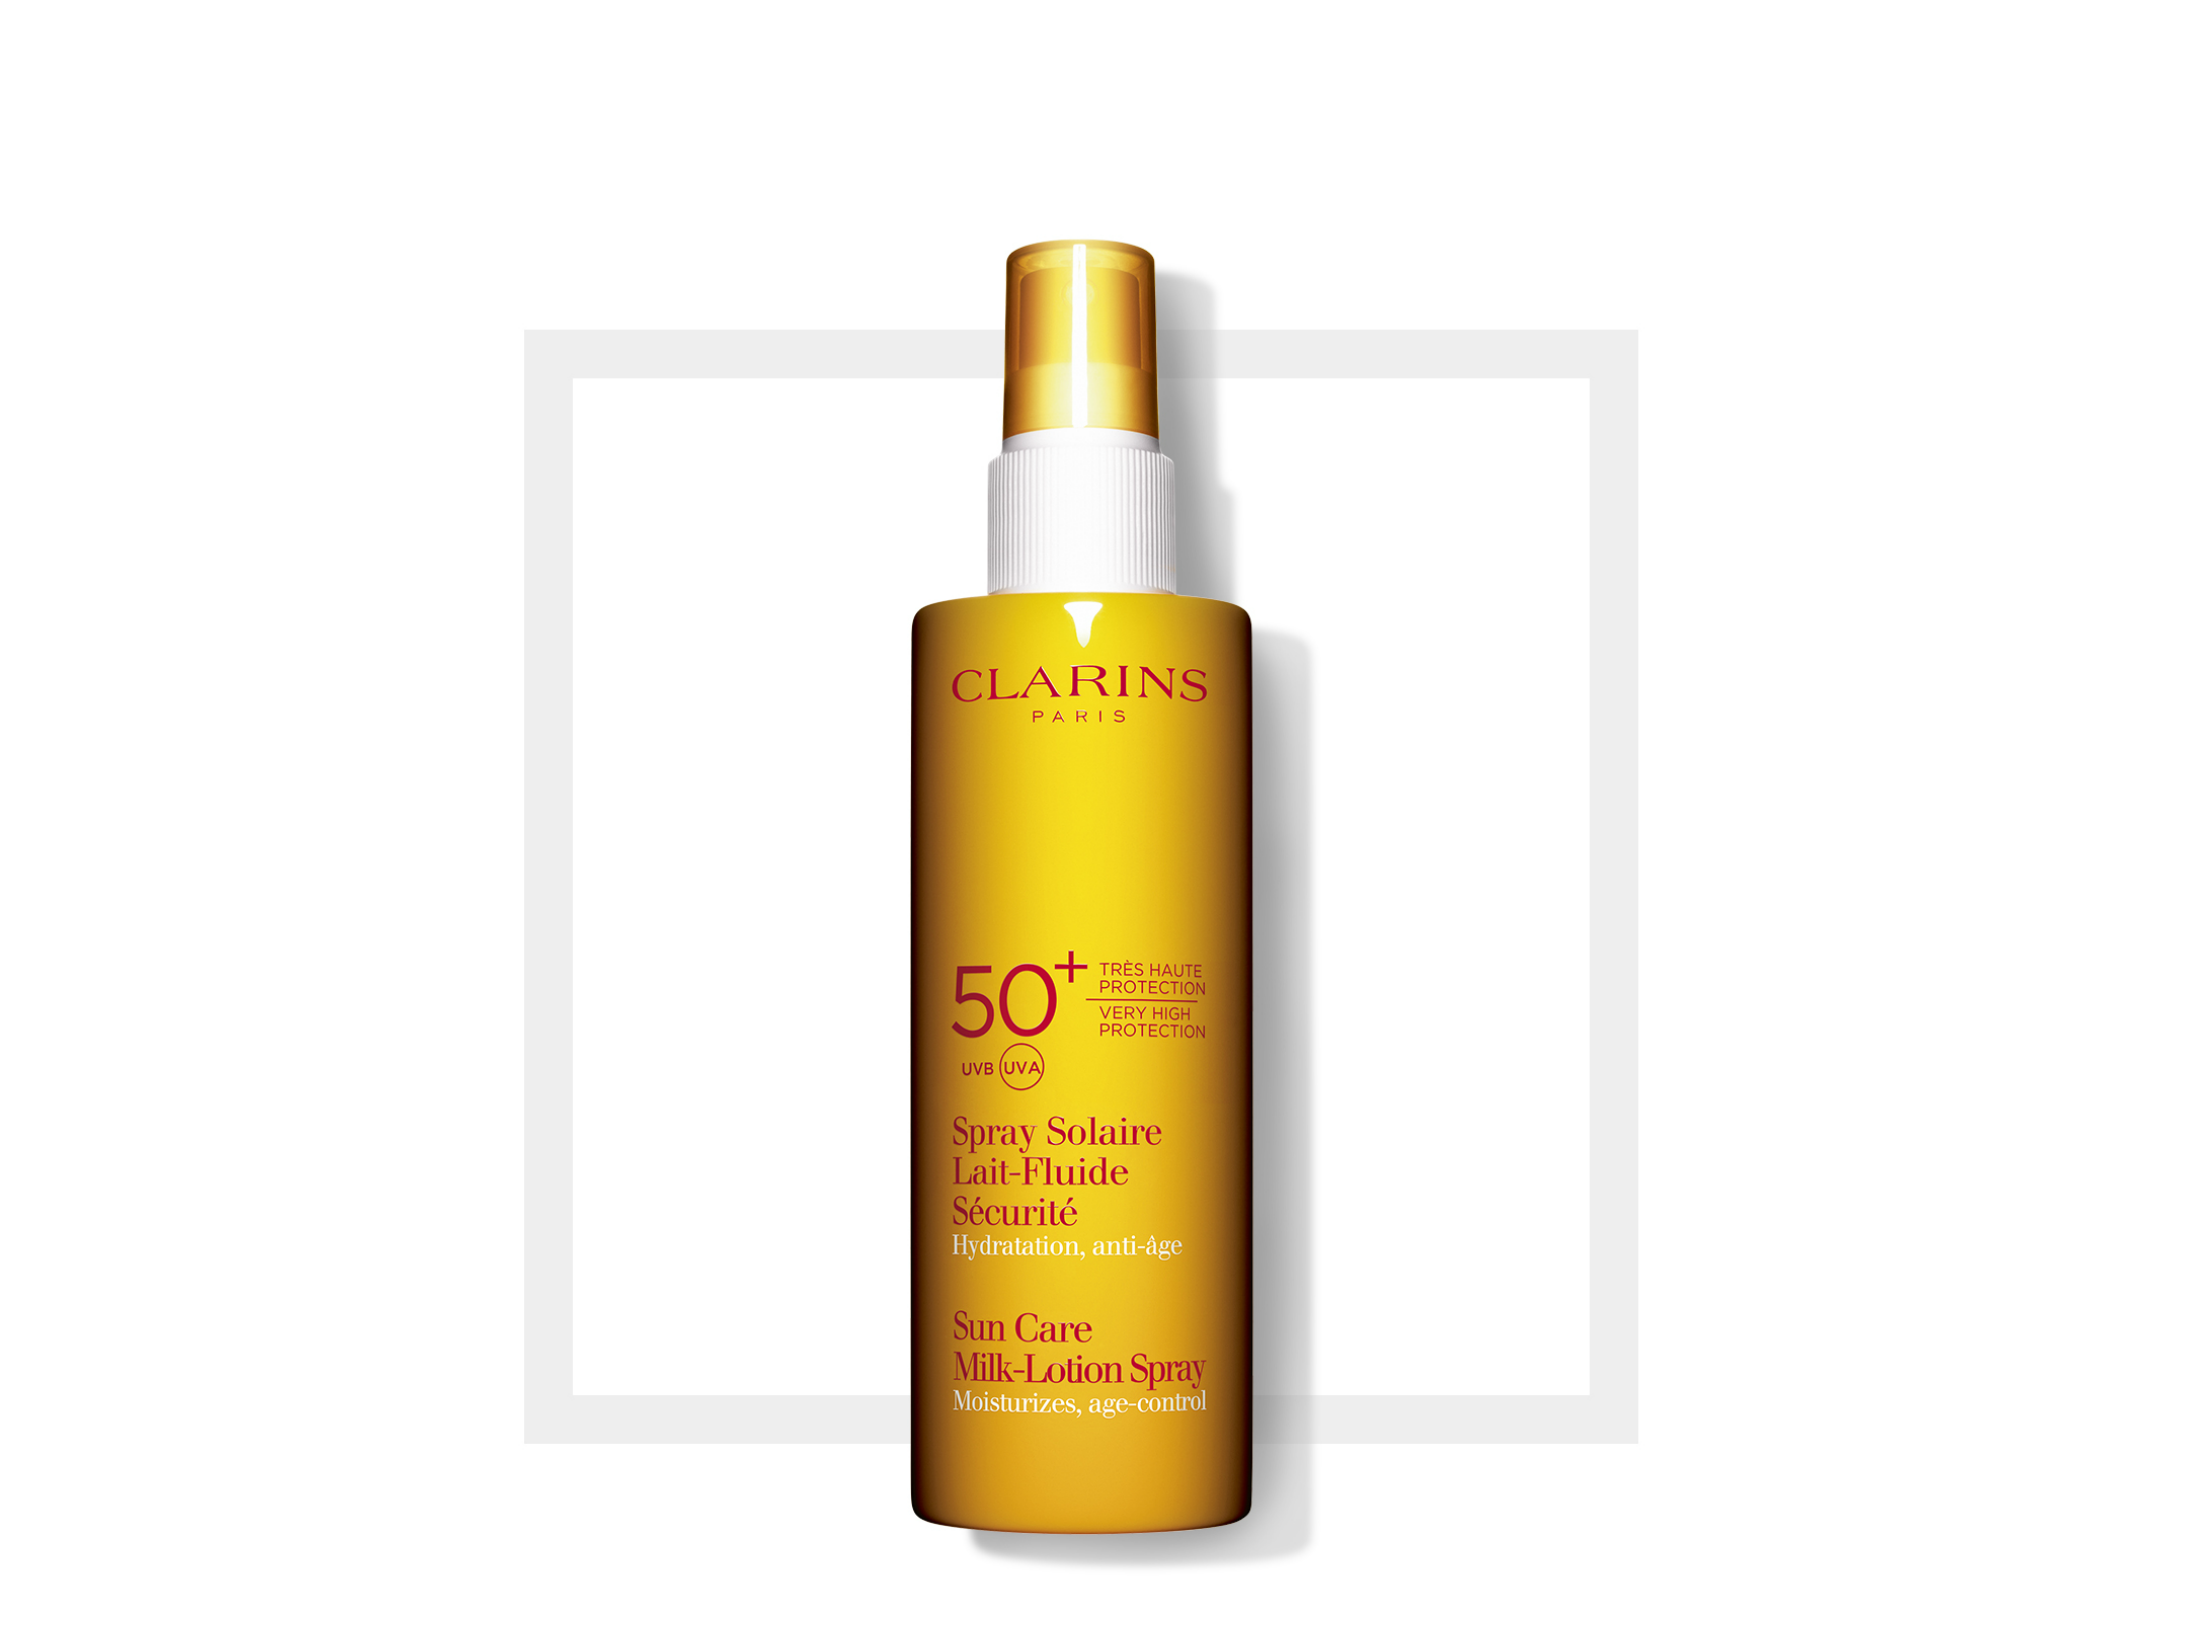 Clarins Sun care milk-lotion spray SPF 50